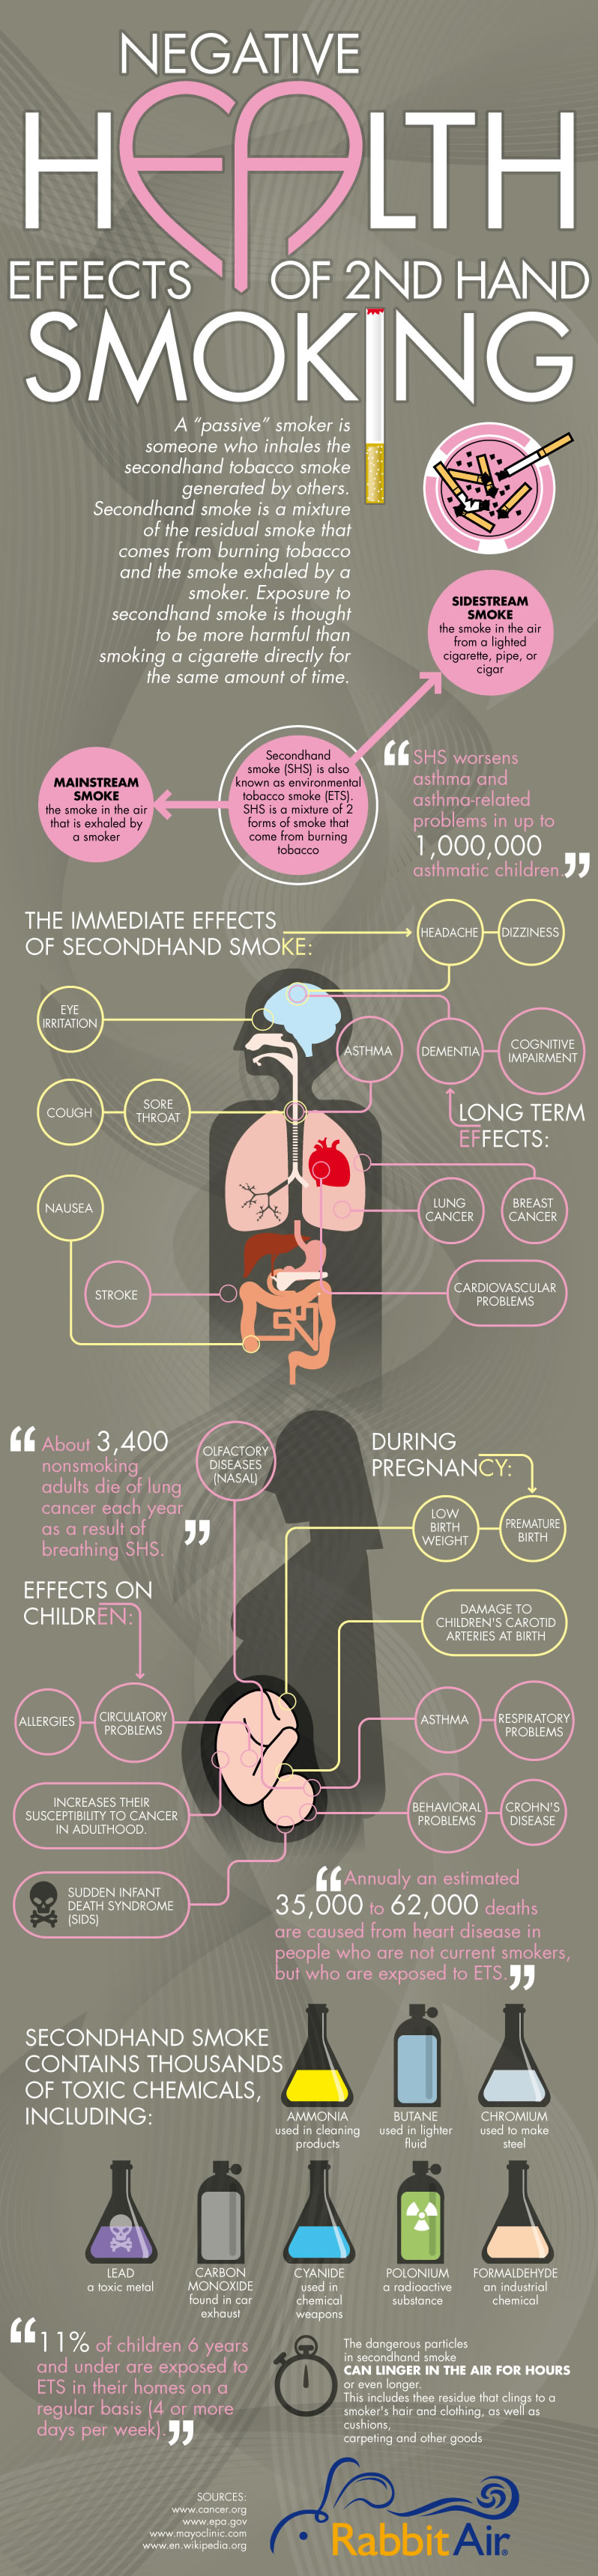 Negative health effects of 2nd hand smoking